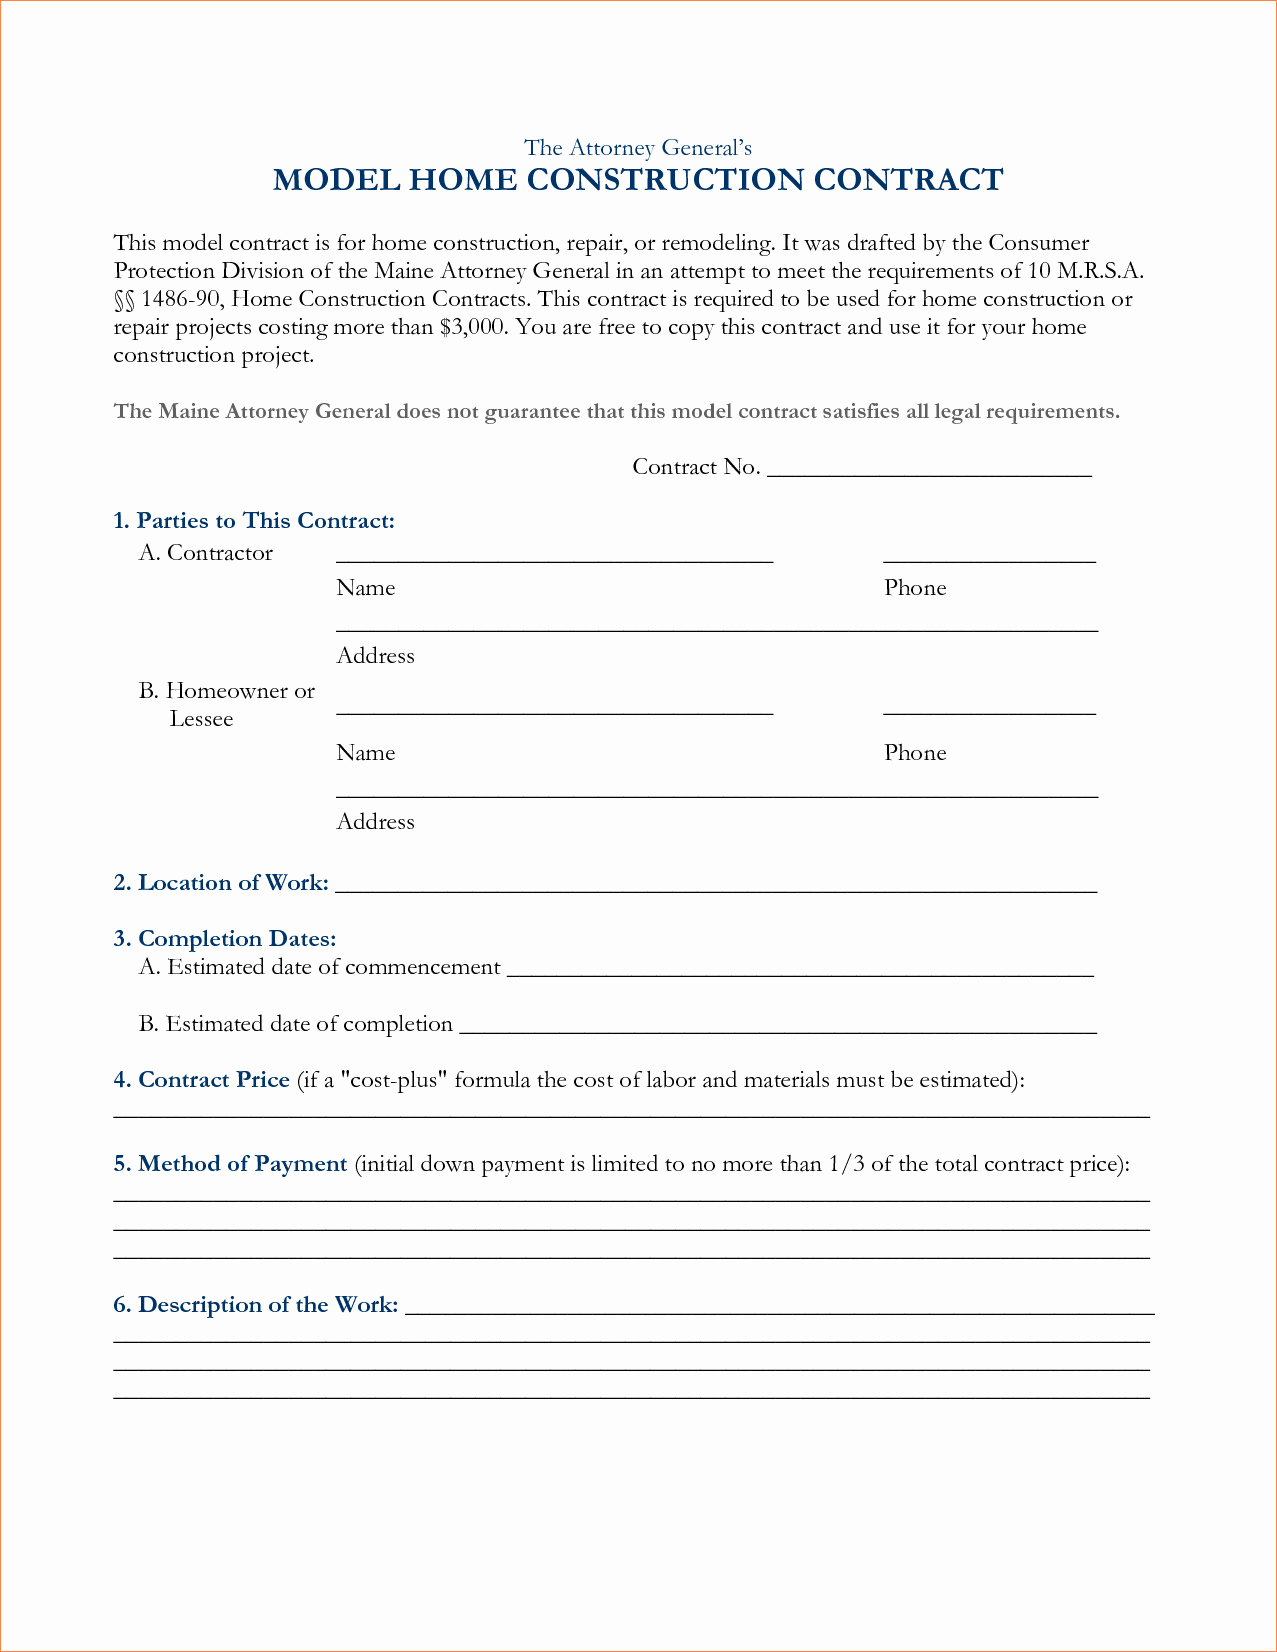 Construction Contract Template Free Inspirational Construction Contract Template